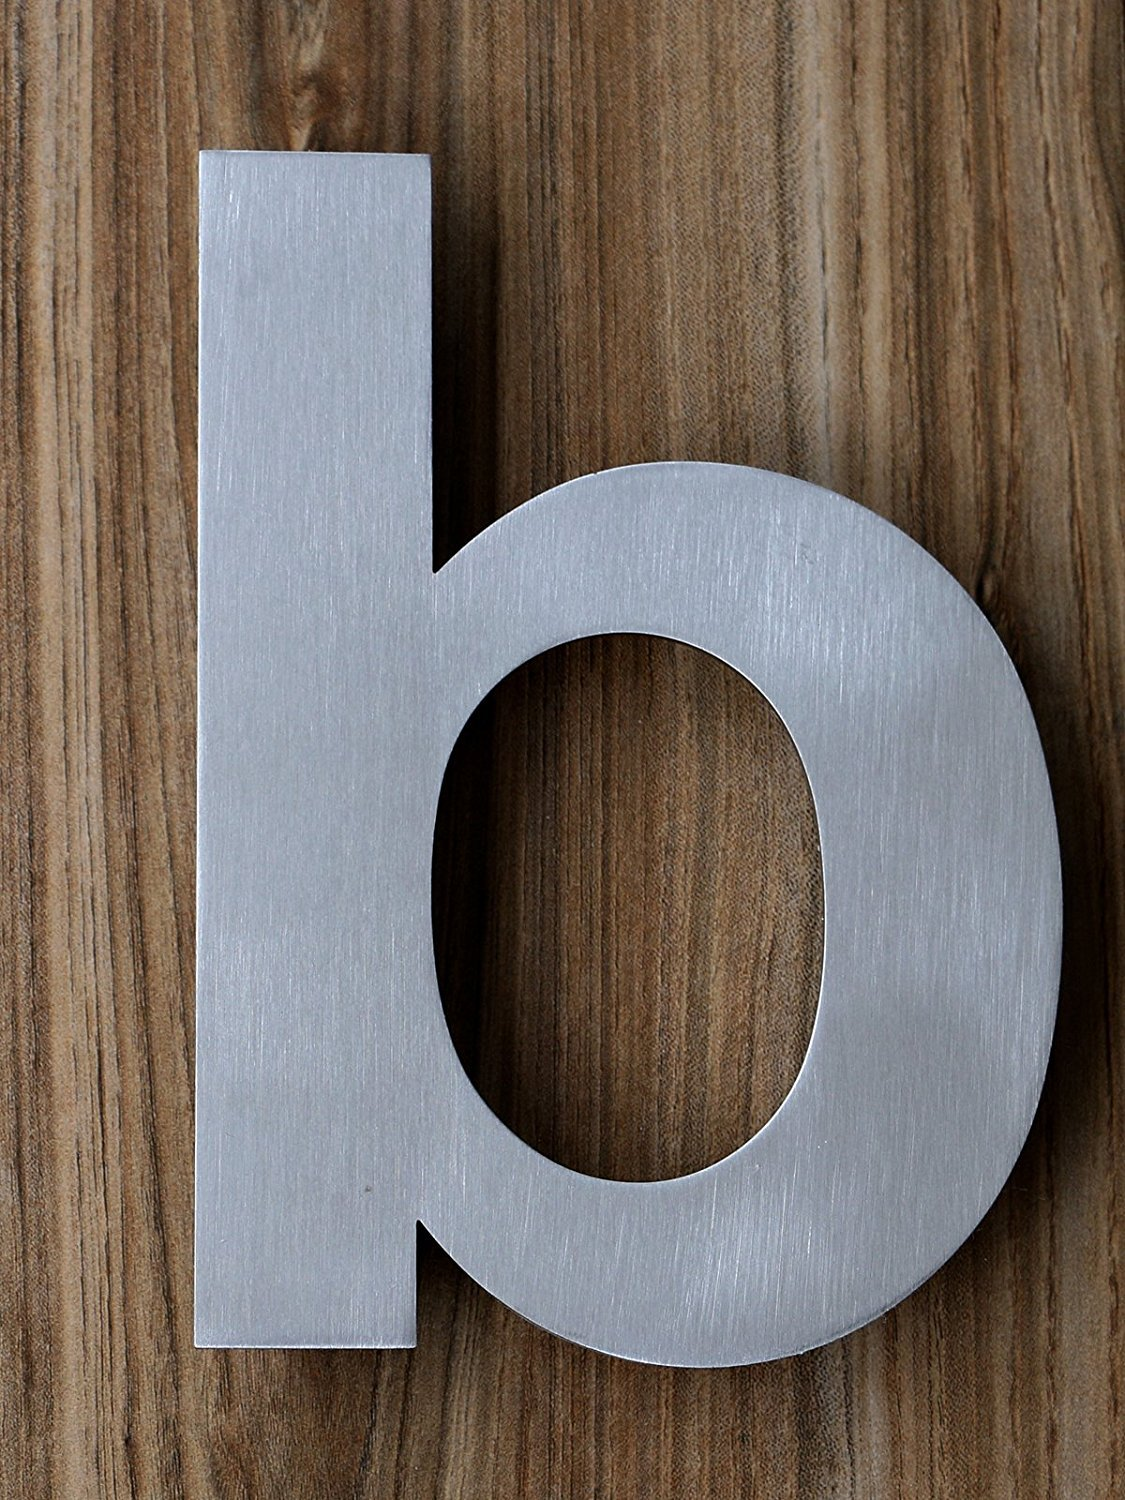 QT Modern House Number - LARGE 8 Inch - Brushed Stainless Steel (Letter b), Floating Appearance, Easy to install and made of solid 304